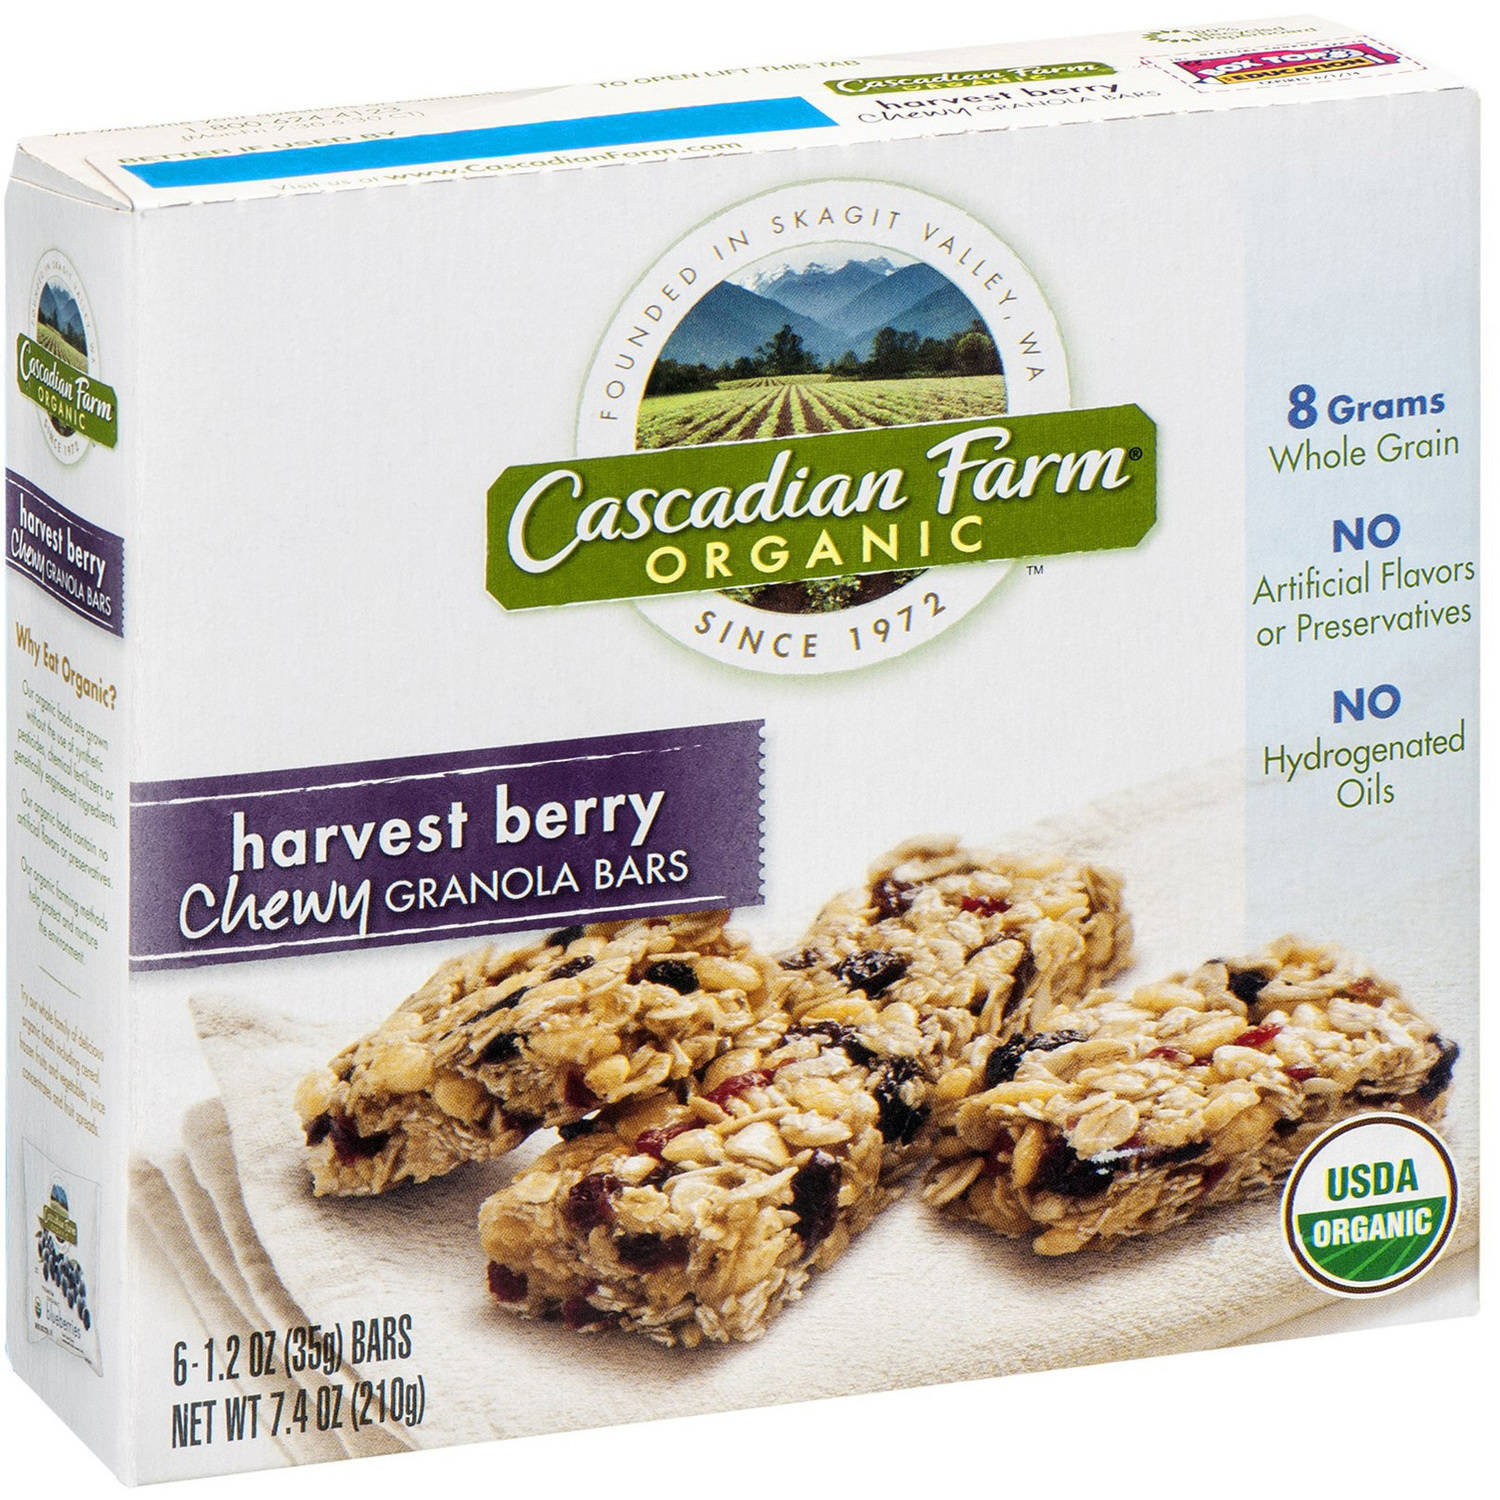 Cascadian Farm Harvest Berry Chewy Granola Bars, 1.2 oz, 6 count